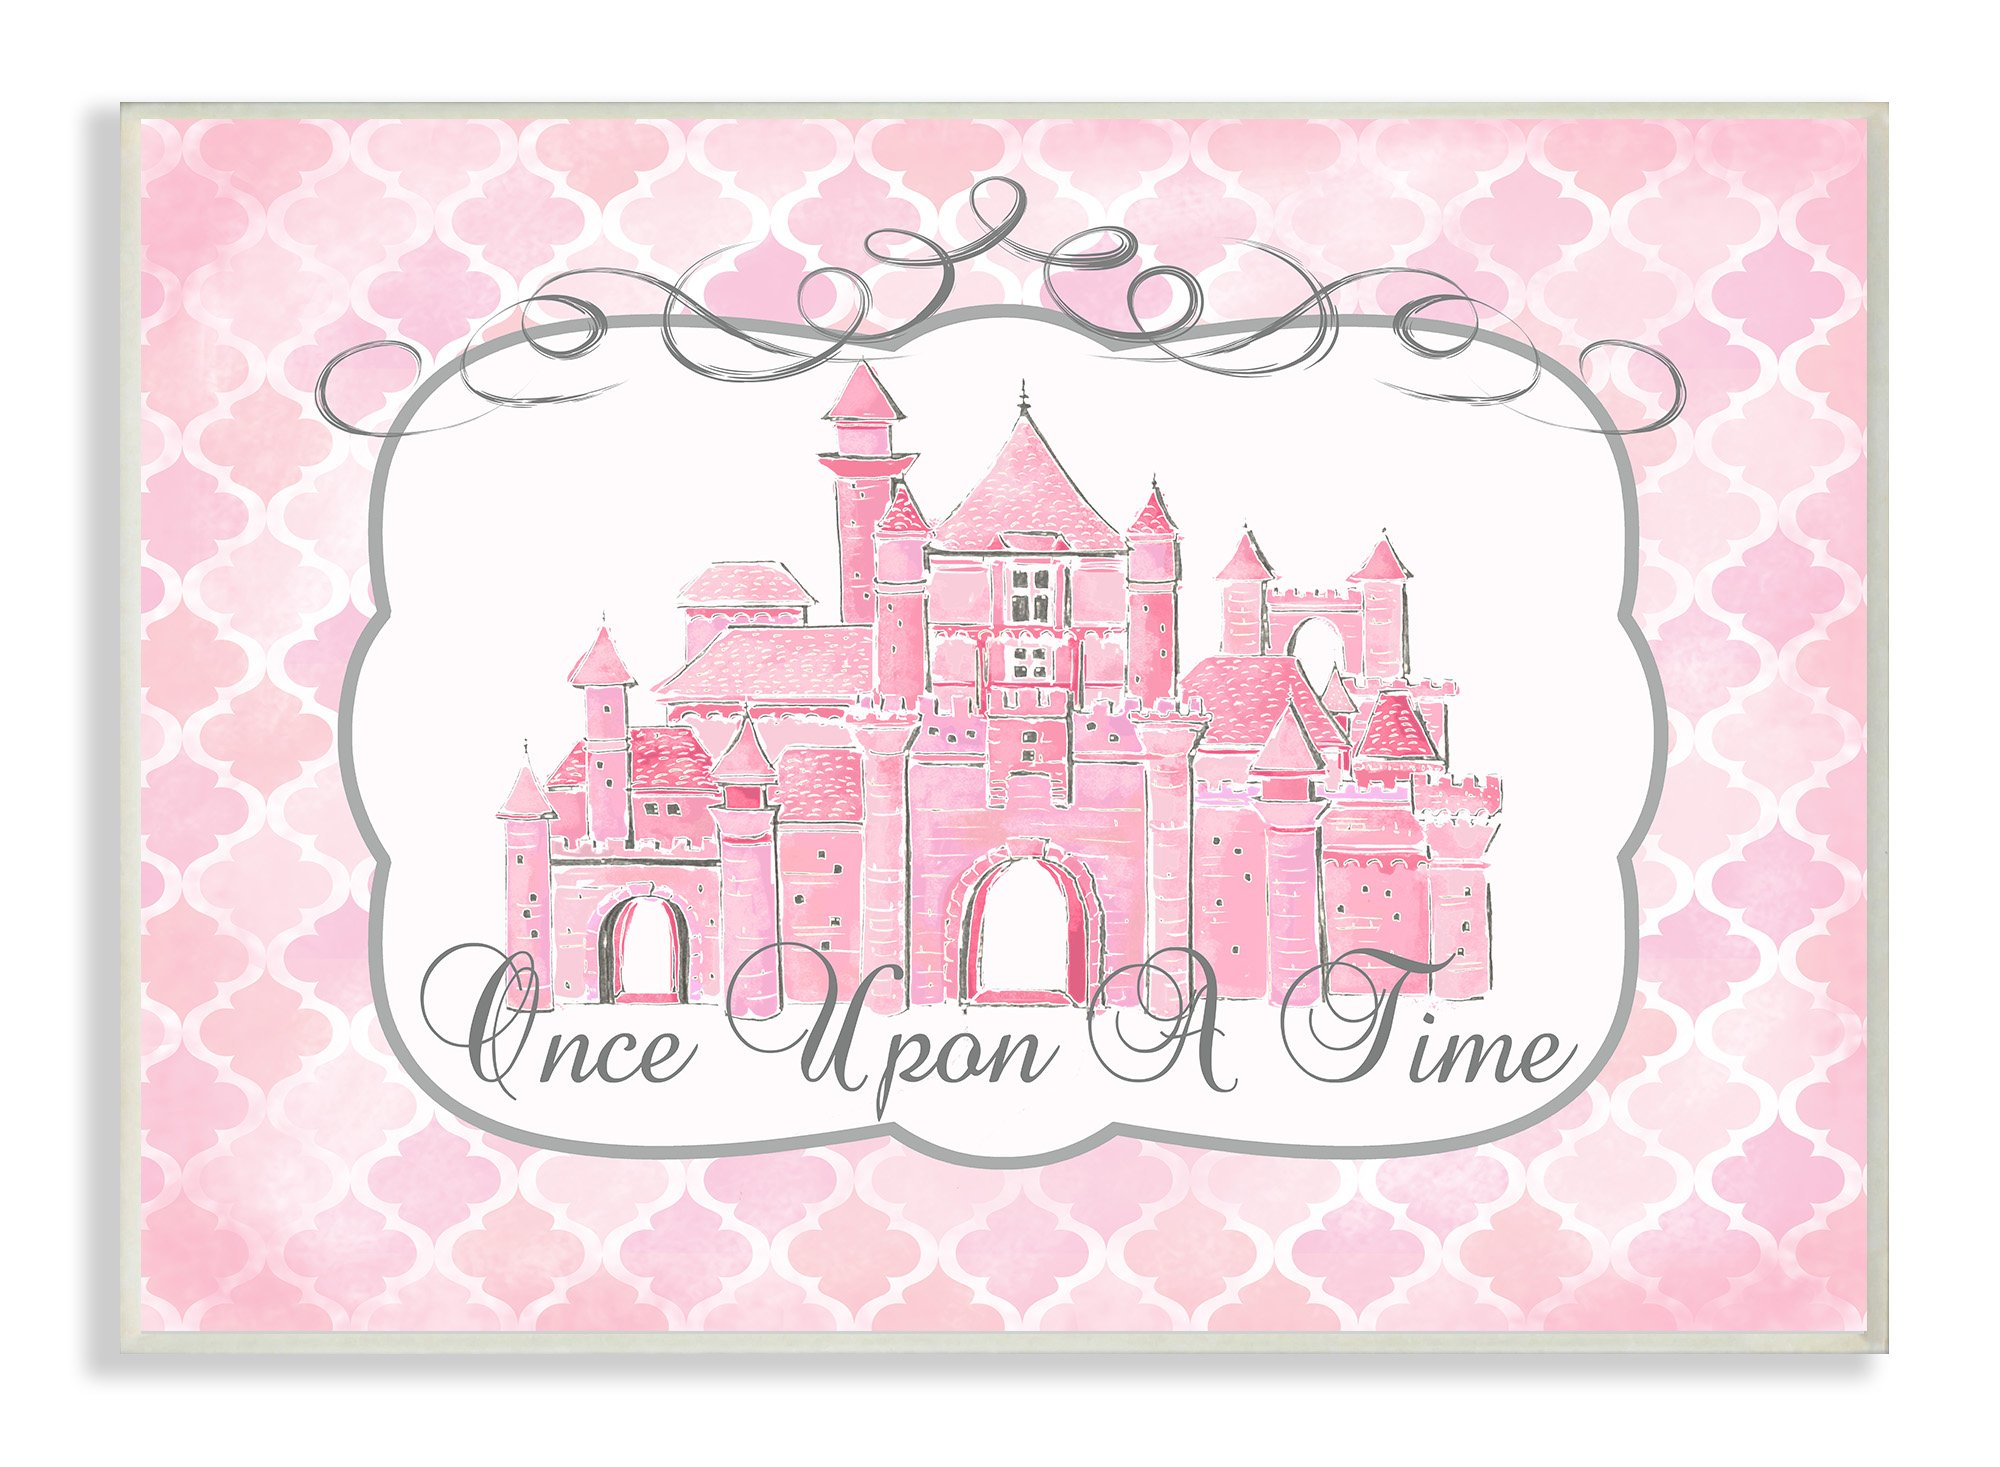 The Kids Room by Stupell Stupell Home Décor Once Upon a Time Pink Water Color Castle Wall Plaque Art, 10 x 0.5 x 15, Proudly Made in USA